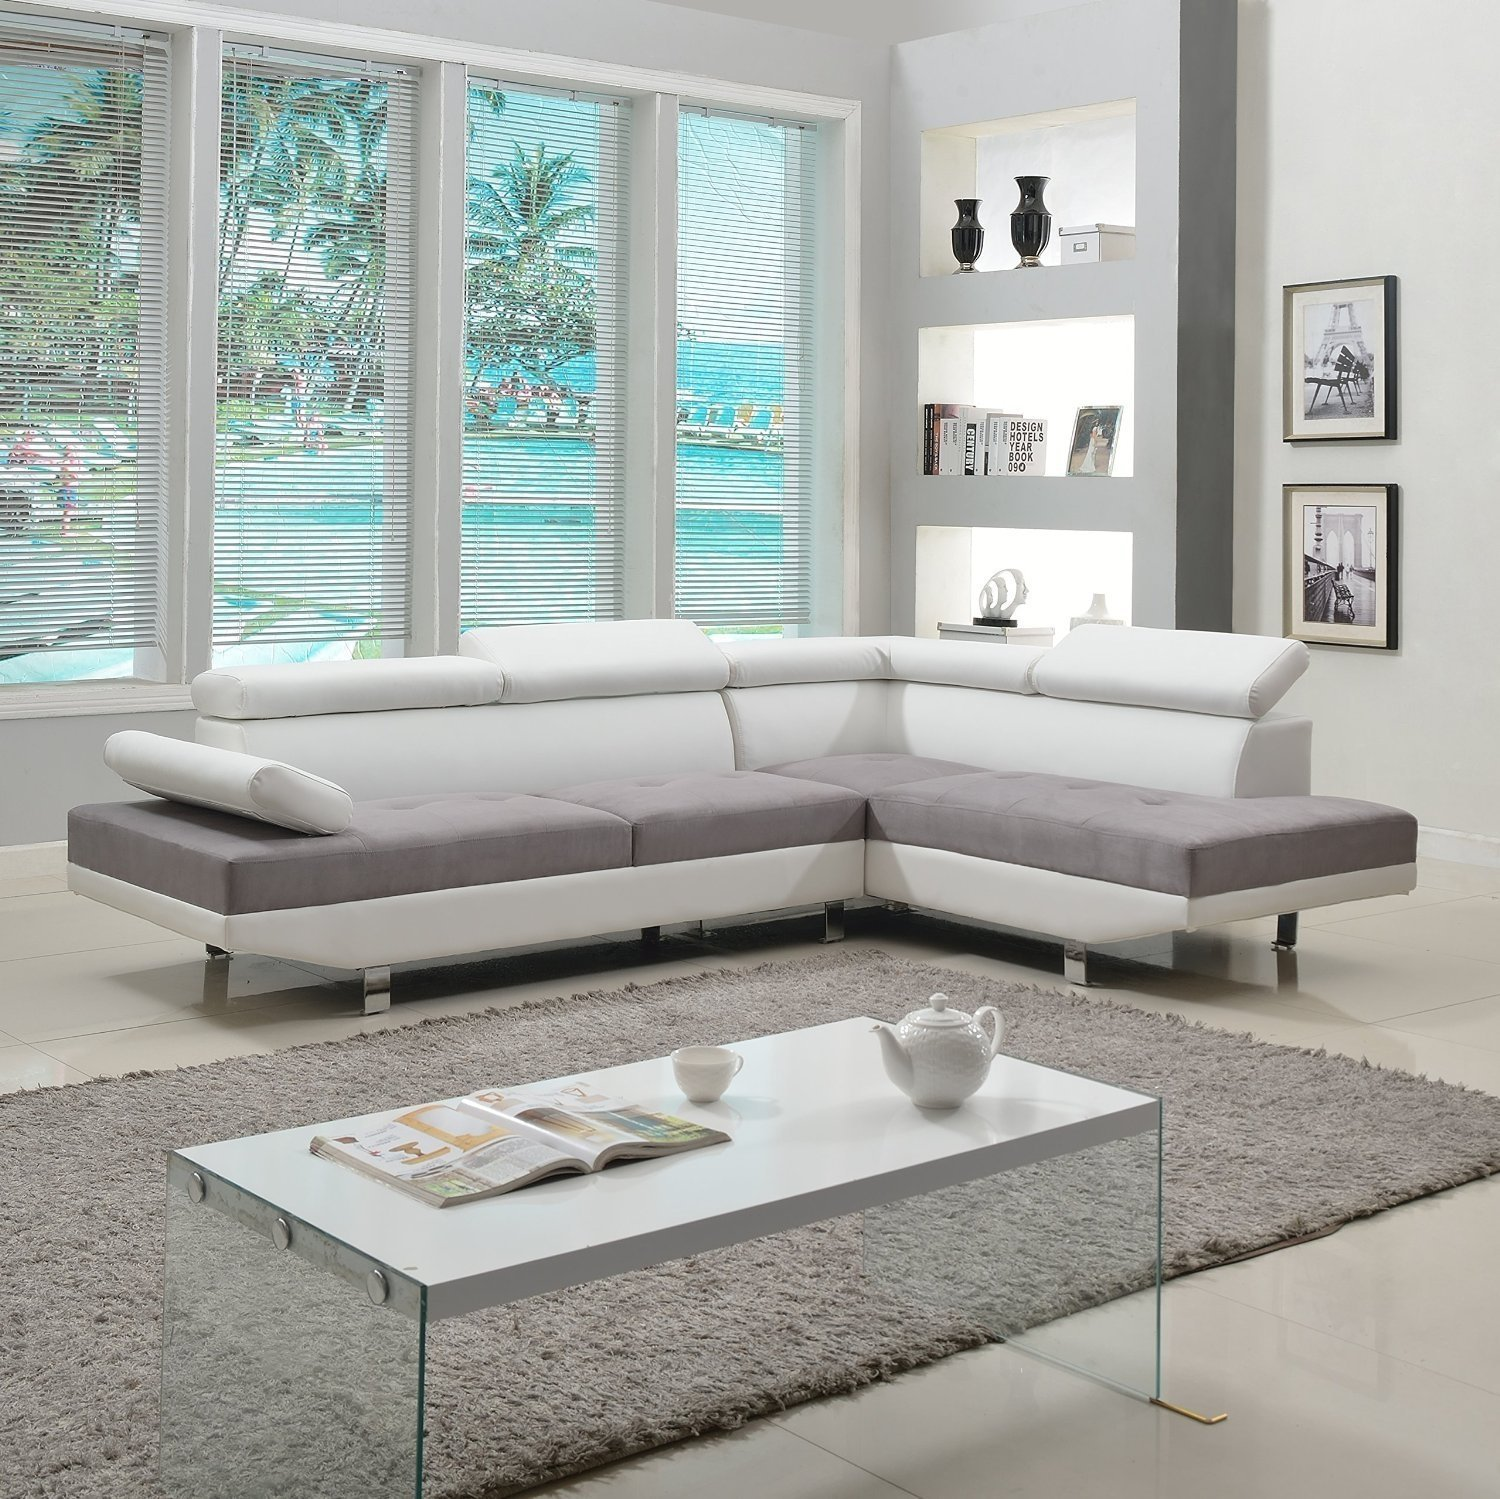 Details About Modern Contemporary Design 2 Tone Microfiber Bonded Leather Sectional Sofa White